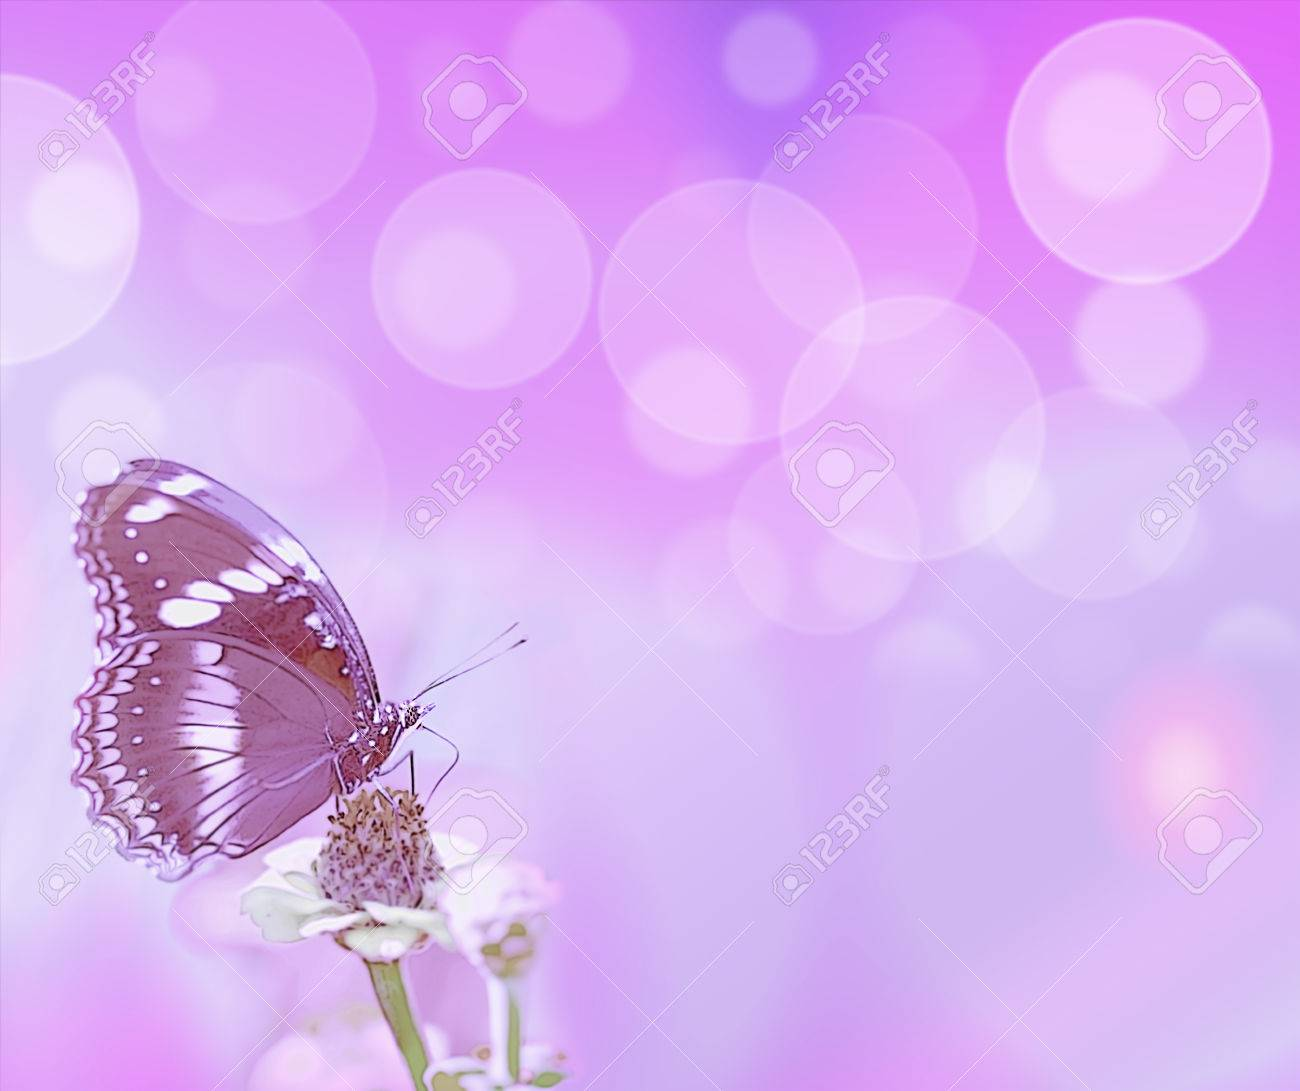 Abstract Purple Bubbles And Butterfly Card Background Symbols